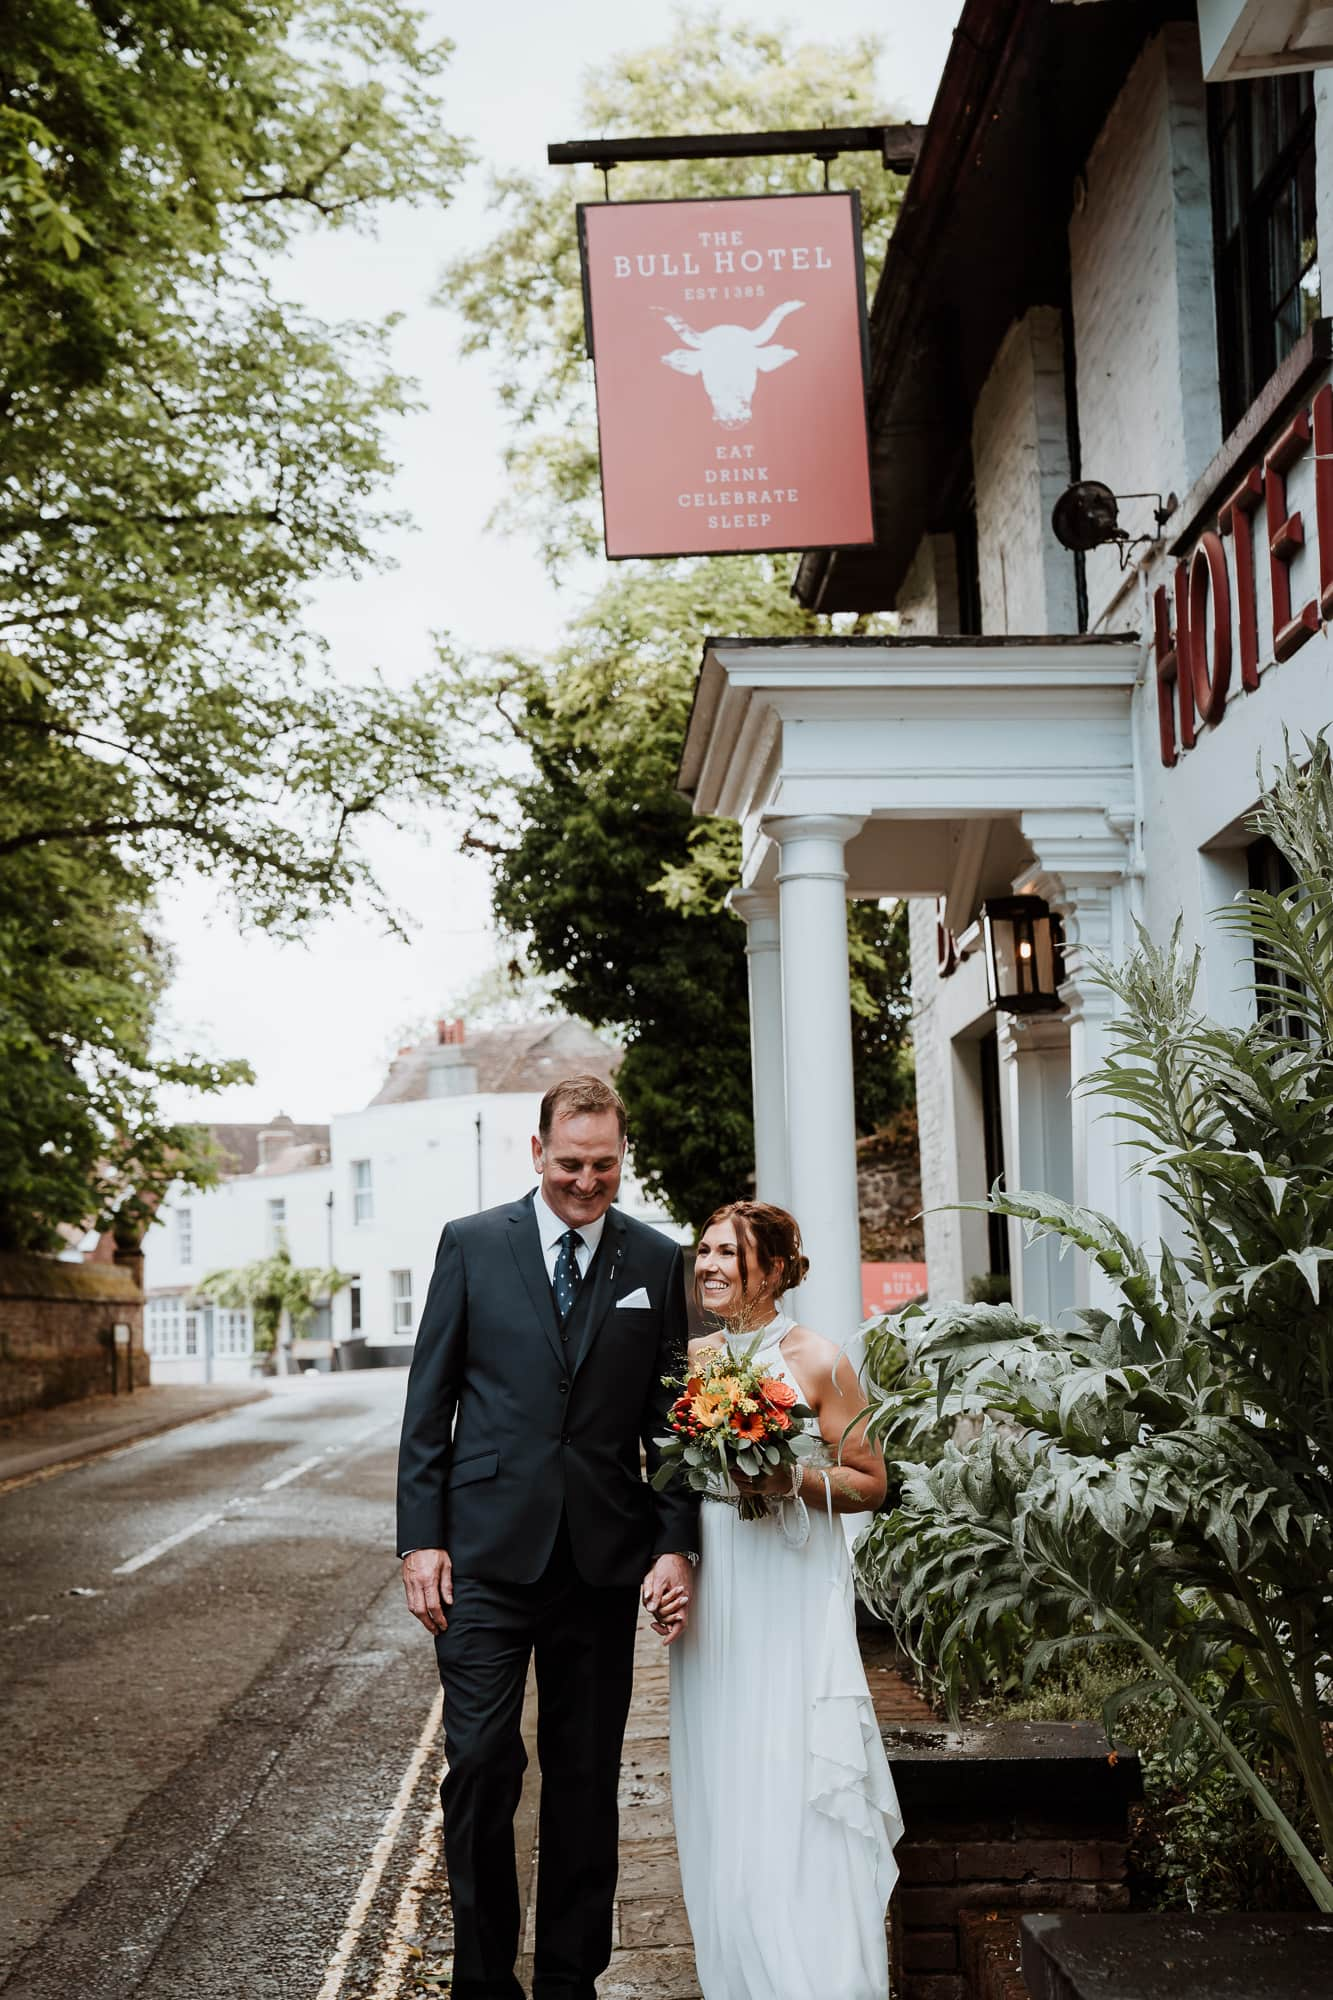 Bride and Groom laughing together at the doors of The Bull Hotel